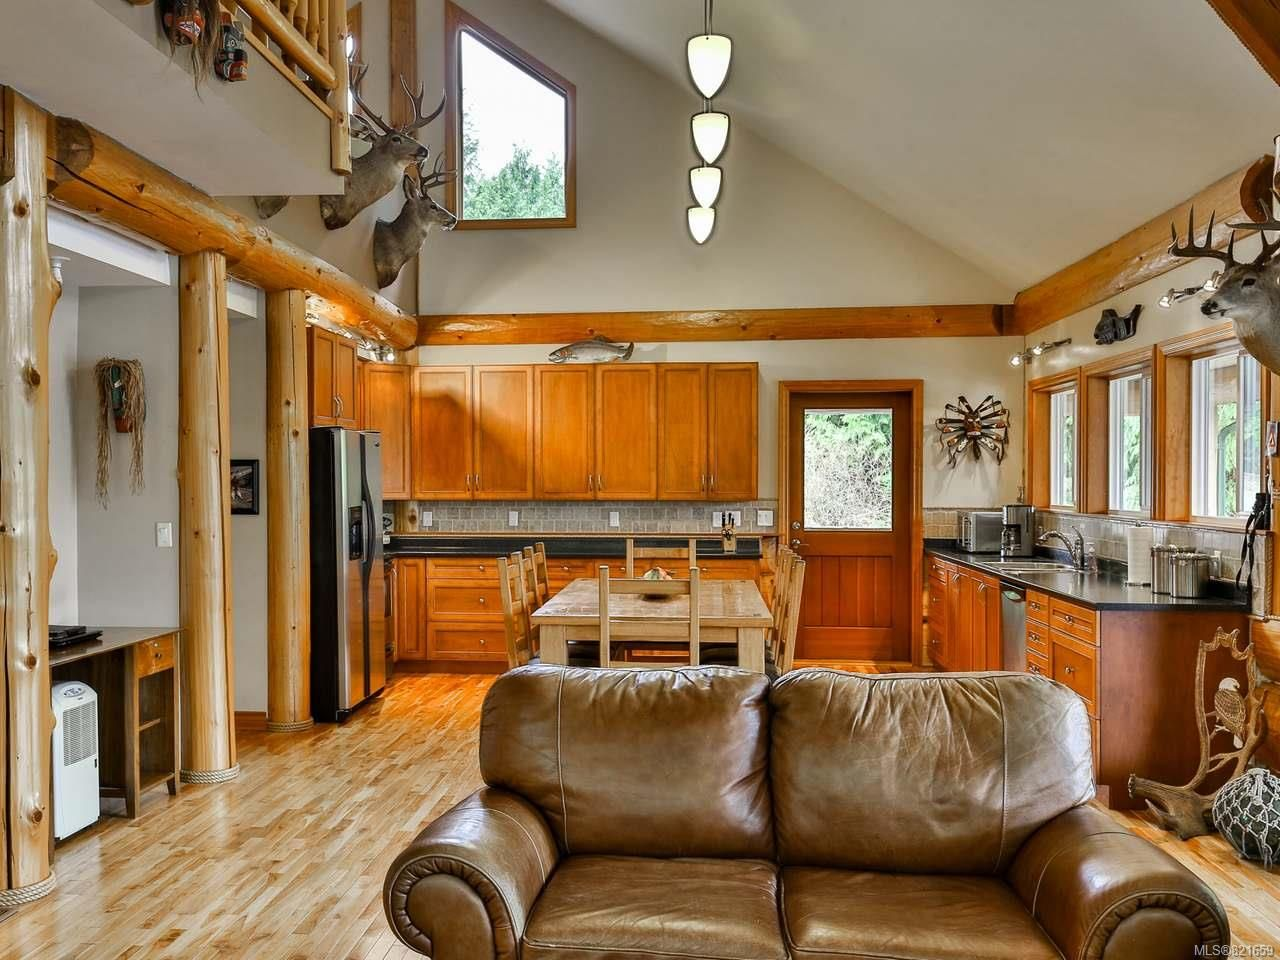 Photo 13: Photos: 1049 Helen Rd in UCLUELET: PA Ucluelet House for sale (Port Alberni)  : MLS®# 821659